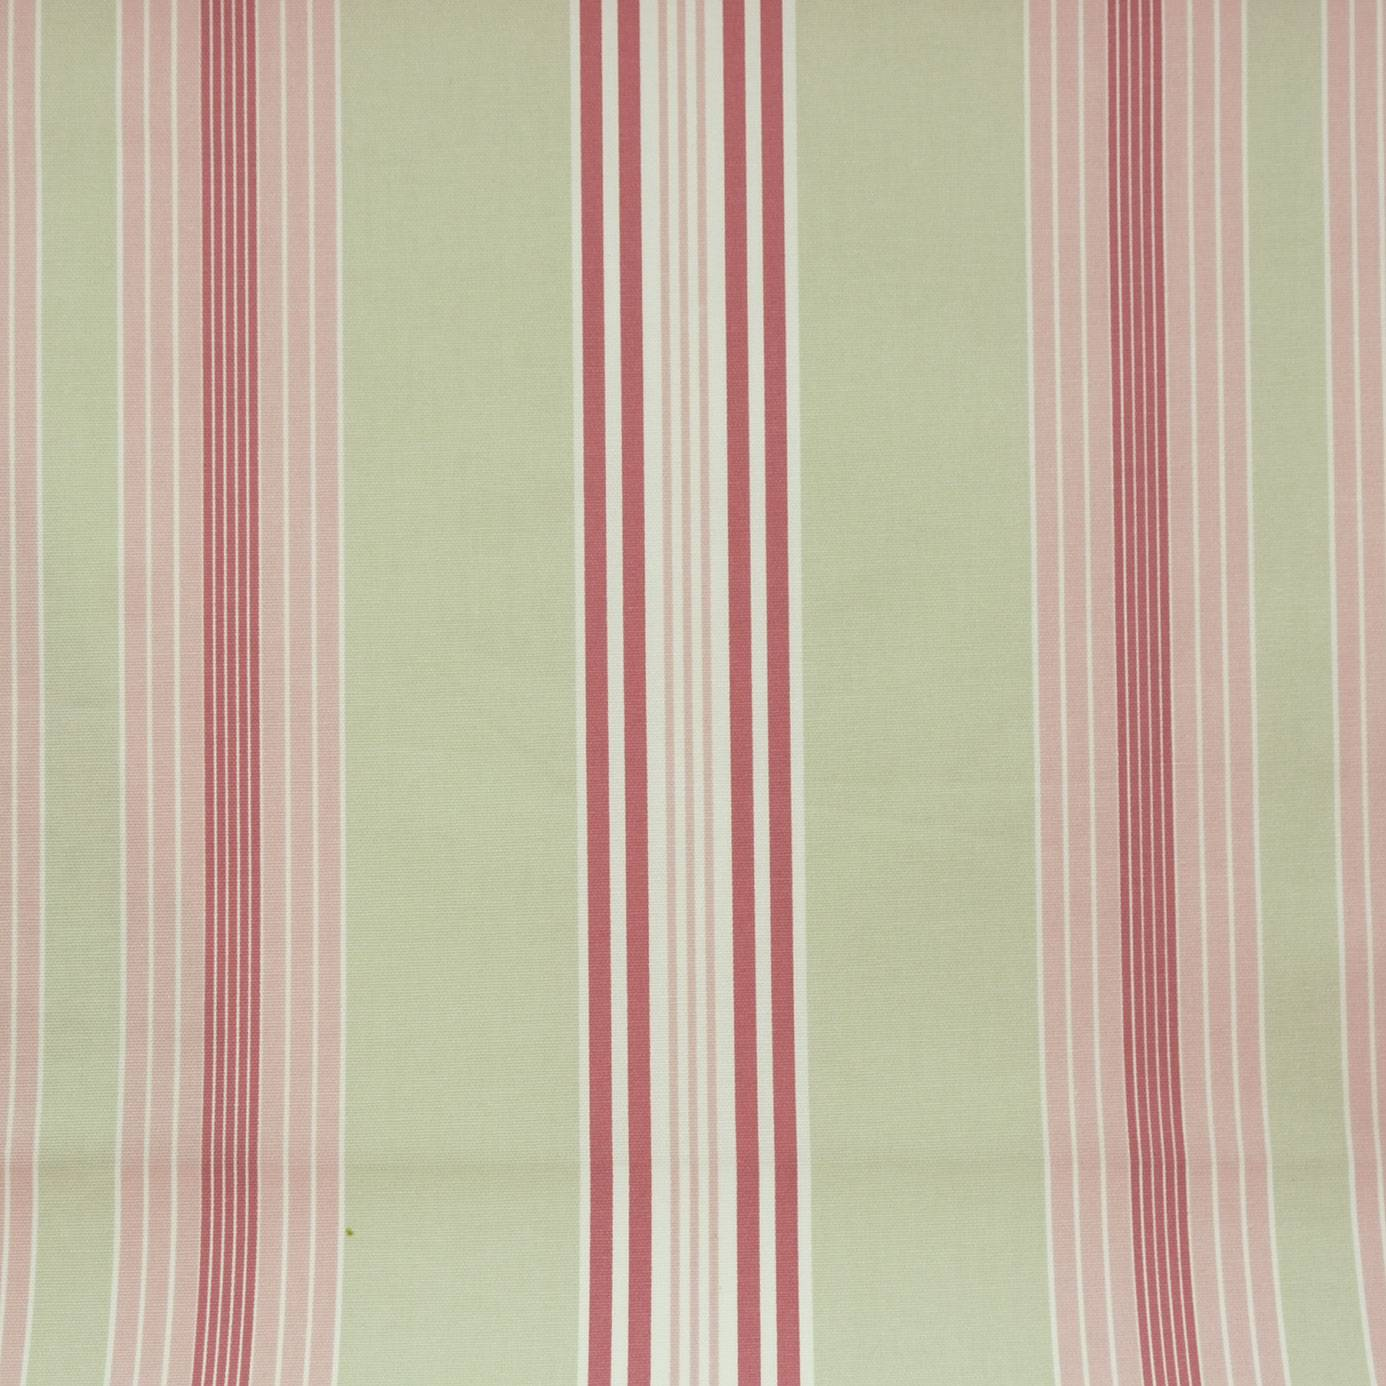 Curtains in lulu stripe fabric sage f0126 06 studio - Modern fabrics for curtains ...